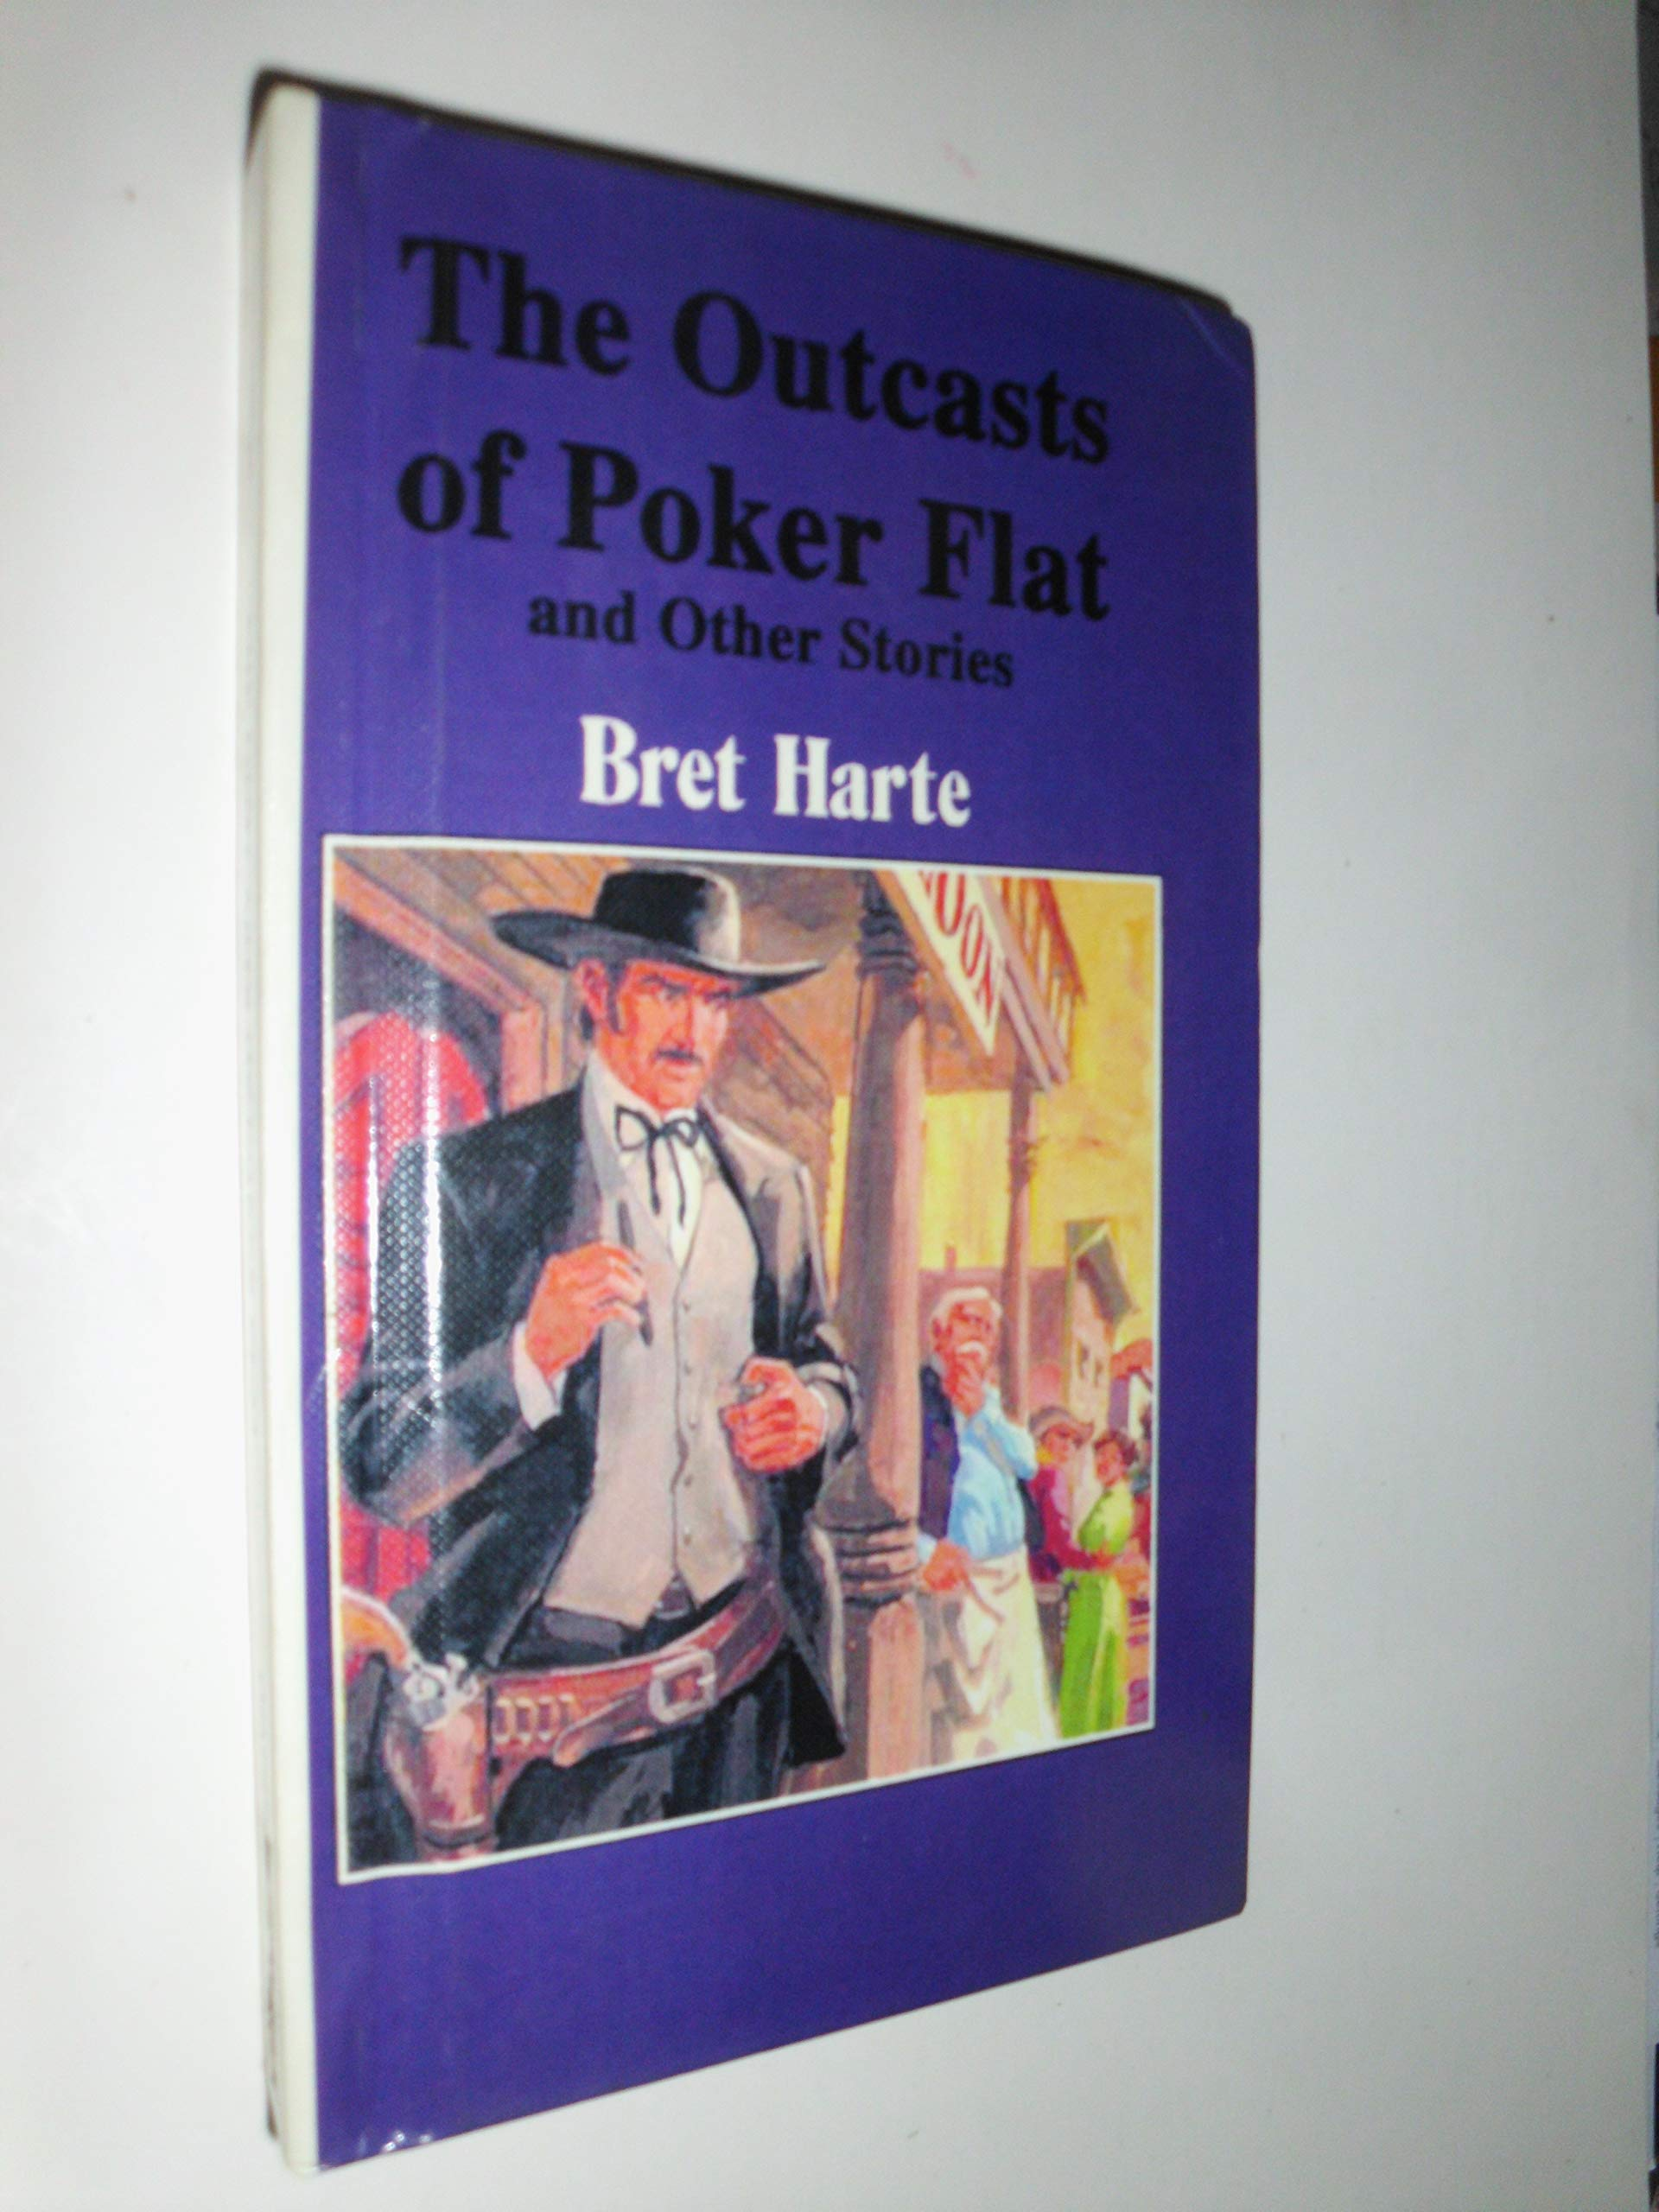 the outcasts of poker flat character analysis